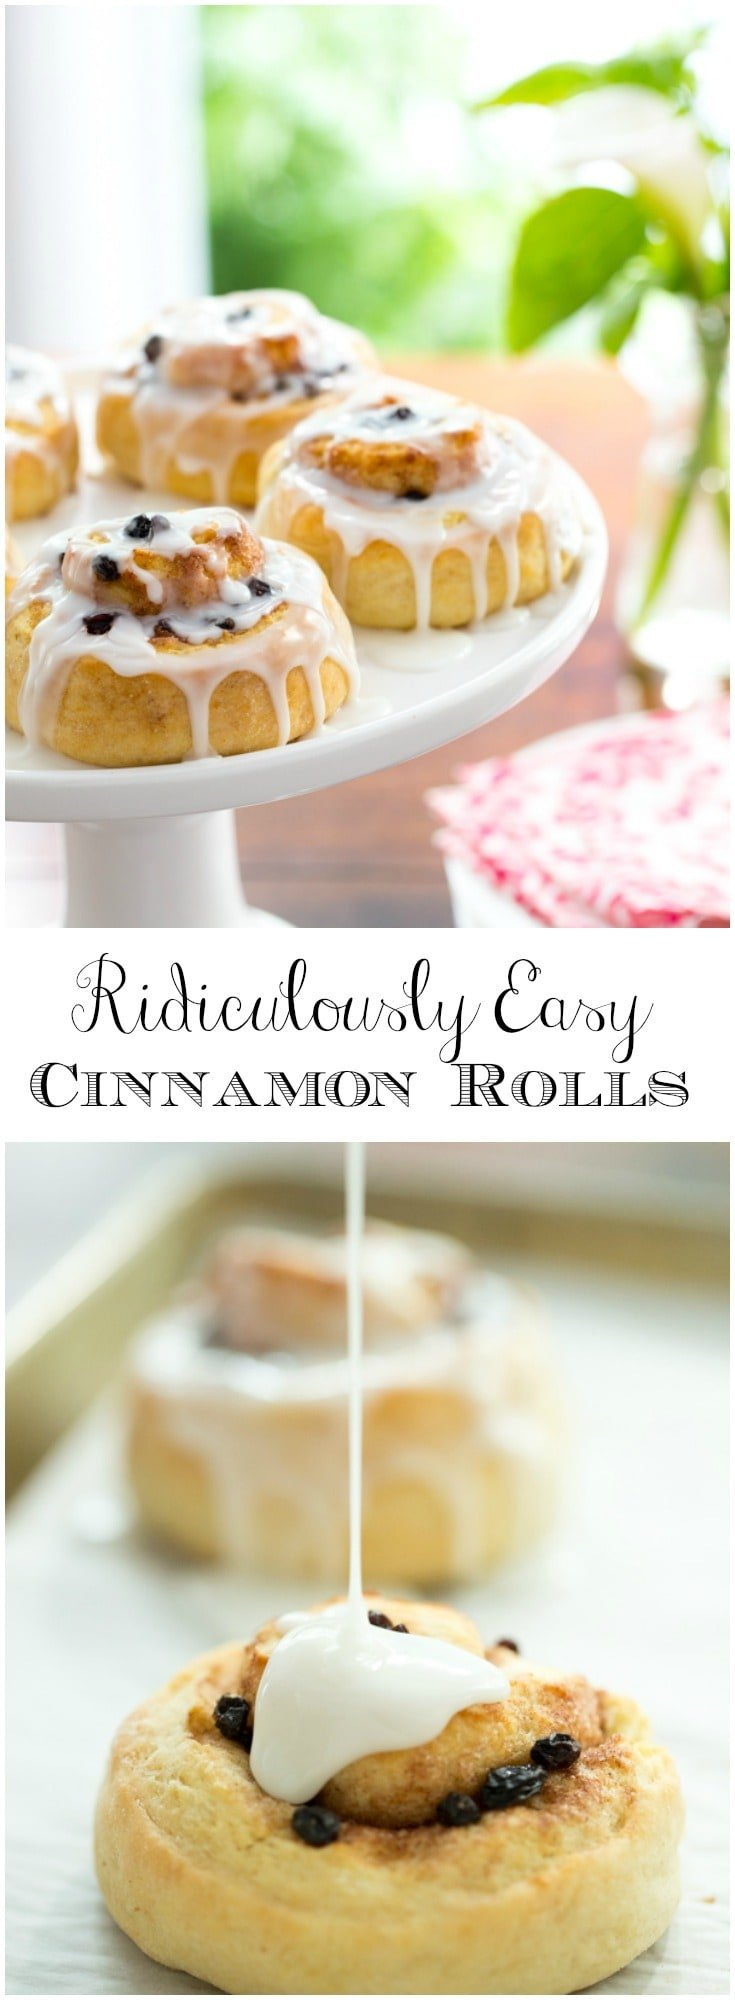 These no-yeast, no-rise, make-ahead cinnamon rolls employ a secret technique that makes them melt in your mouth delicious!